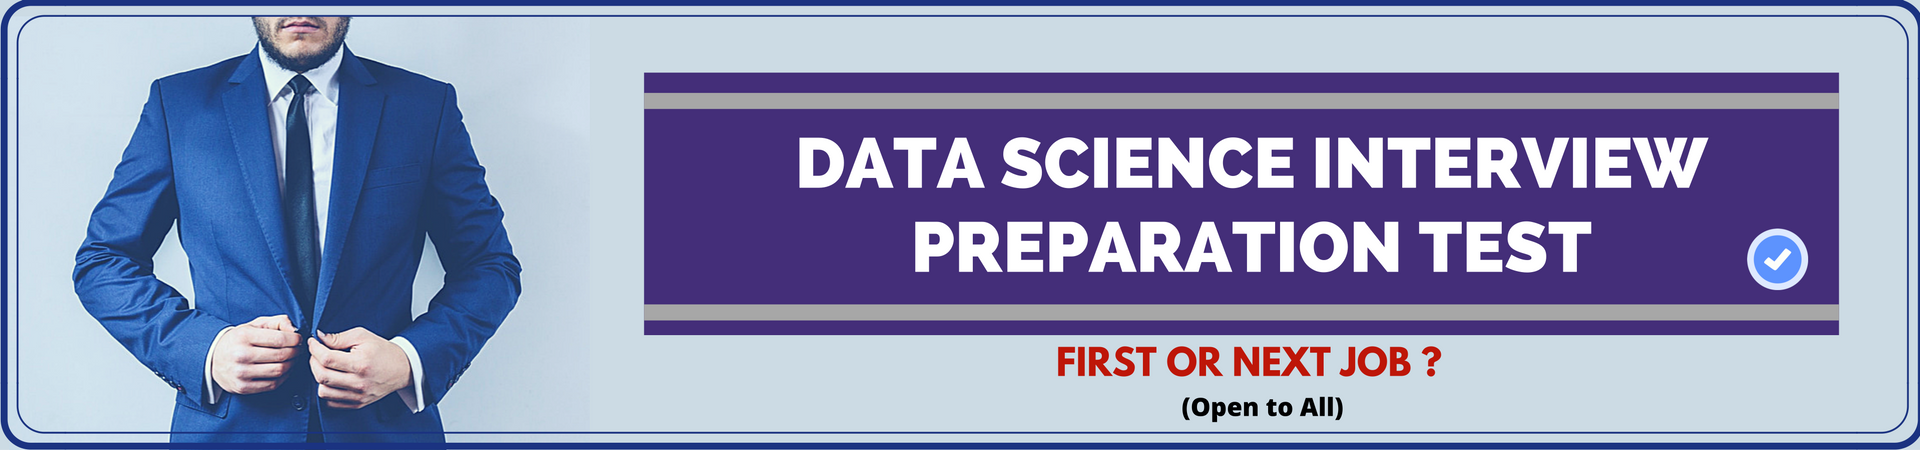 data science interview preparation test cover image for data science interview preparation test